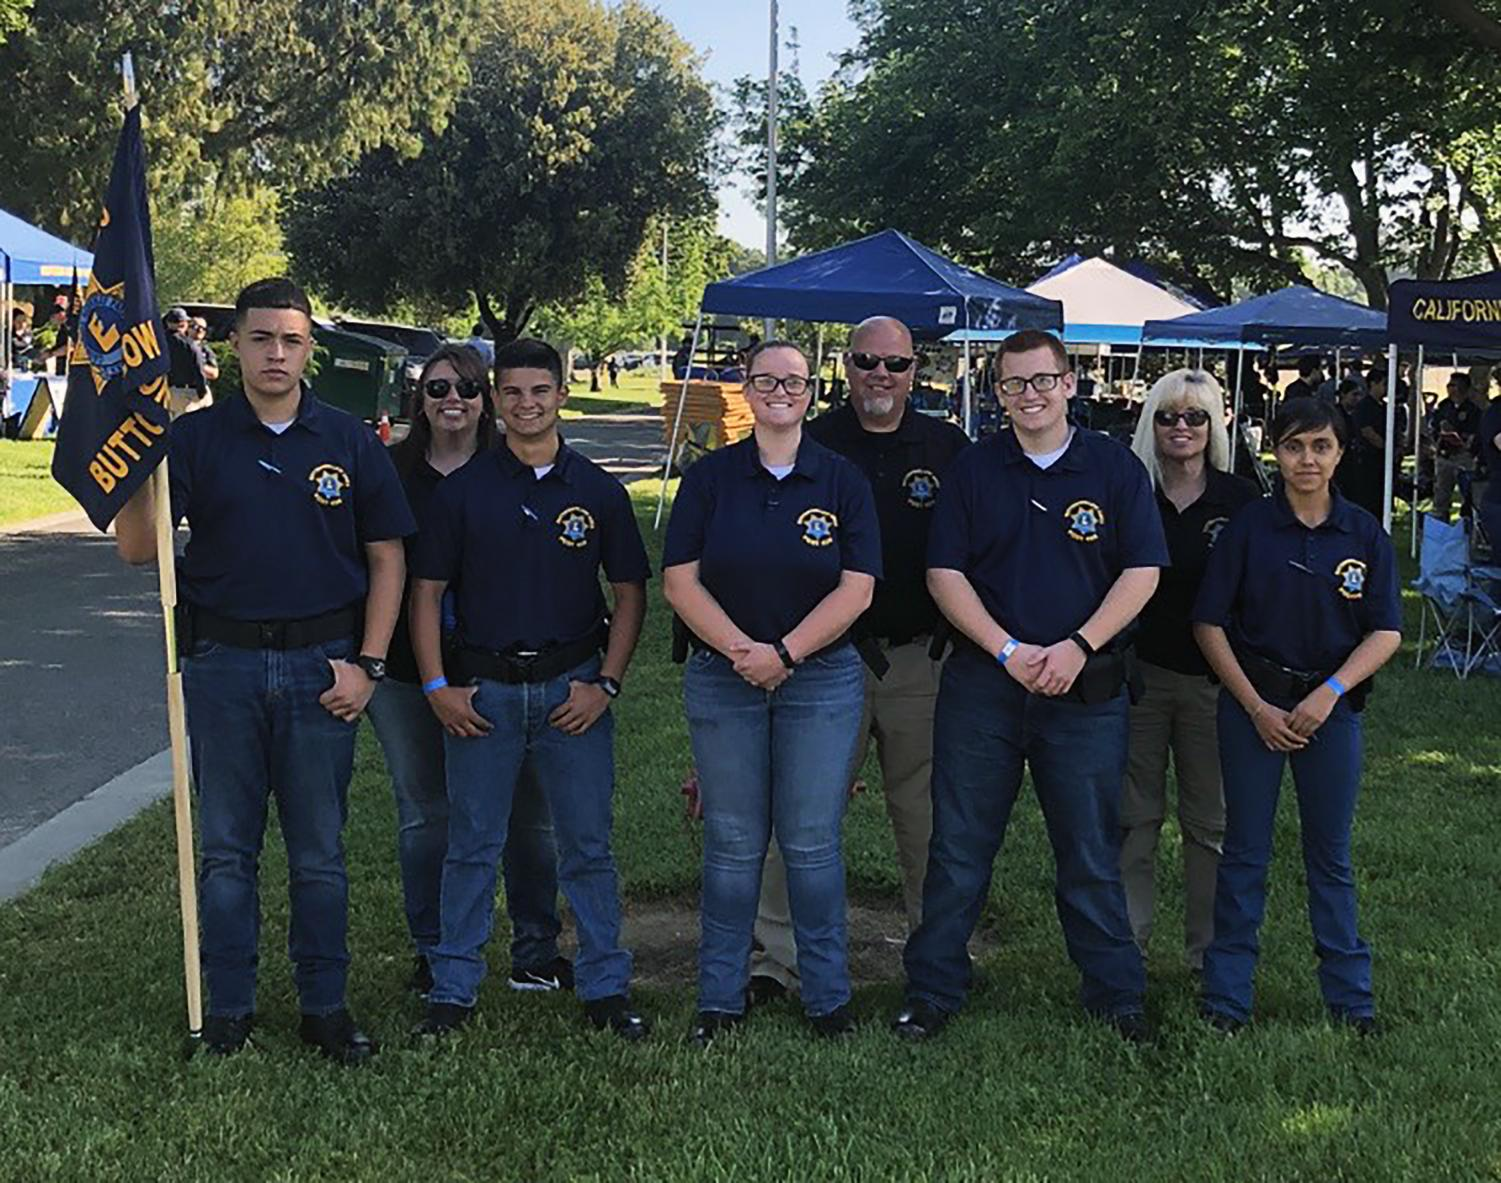 Post 426 explorers smile for the camera. This year the post brought five explorers to the CHP Academy to compete in an annual competition. Members listed from left to right: Sergio Gomez, Michael White, Makenna Kirby, Hunter Thomas, and Leslie Hinojosa. Advisers photographed: Suzanne White, Tommy White, and Korina Rawls.